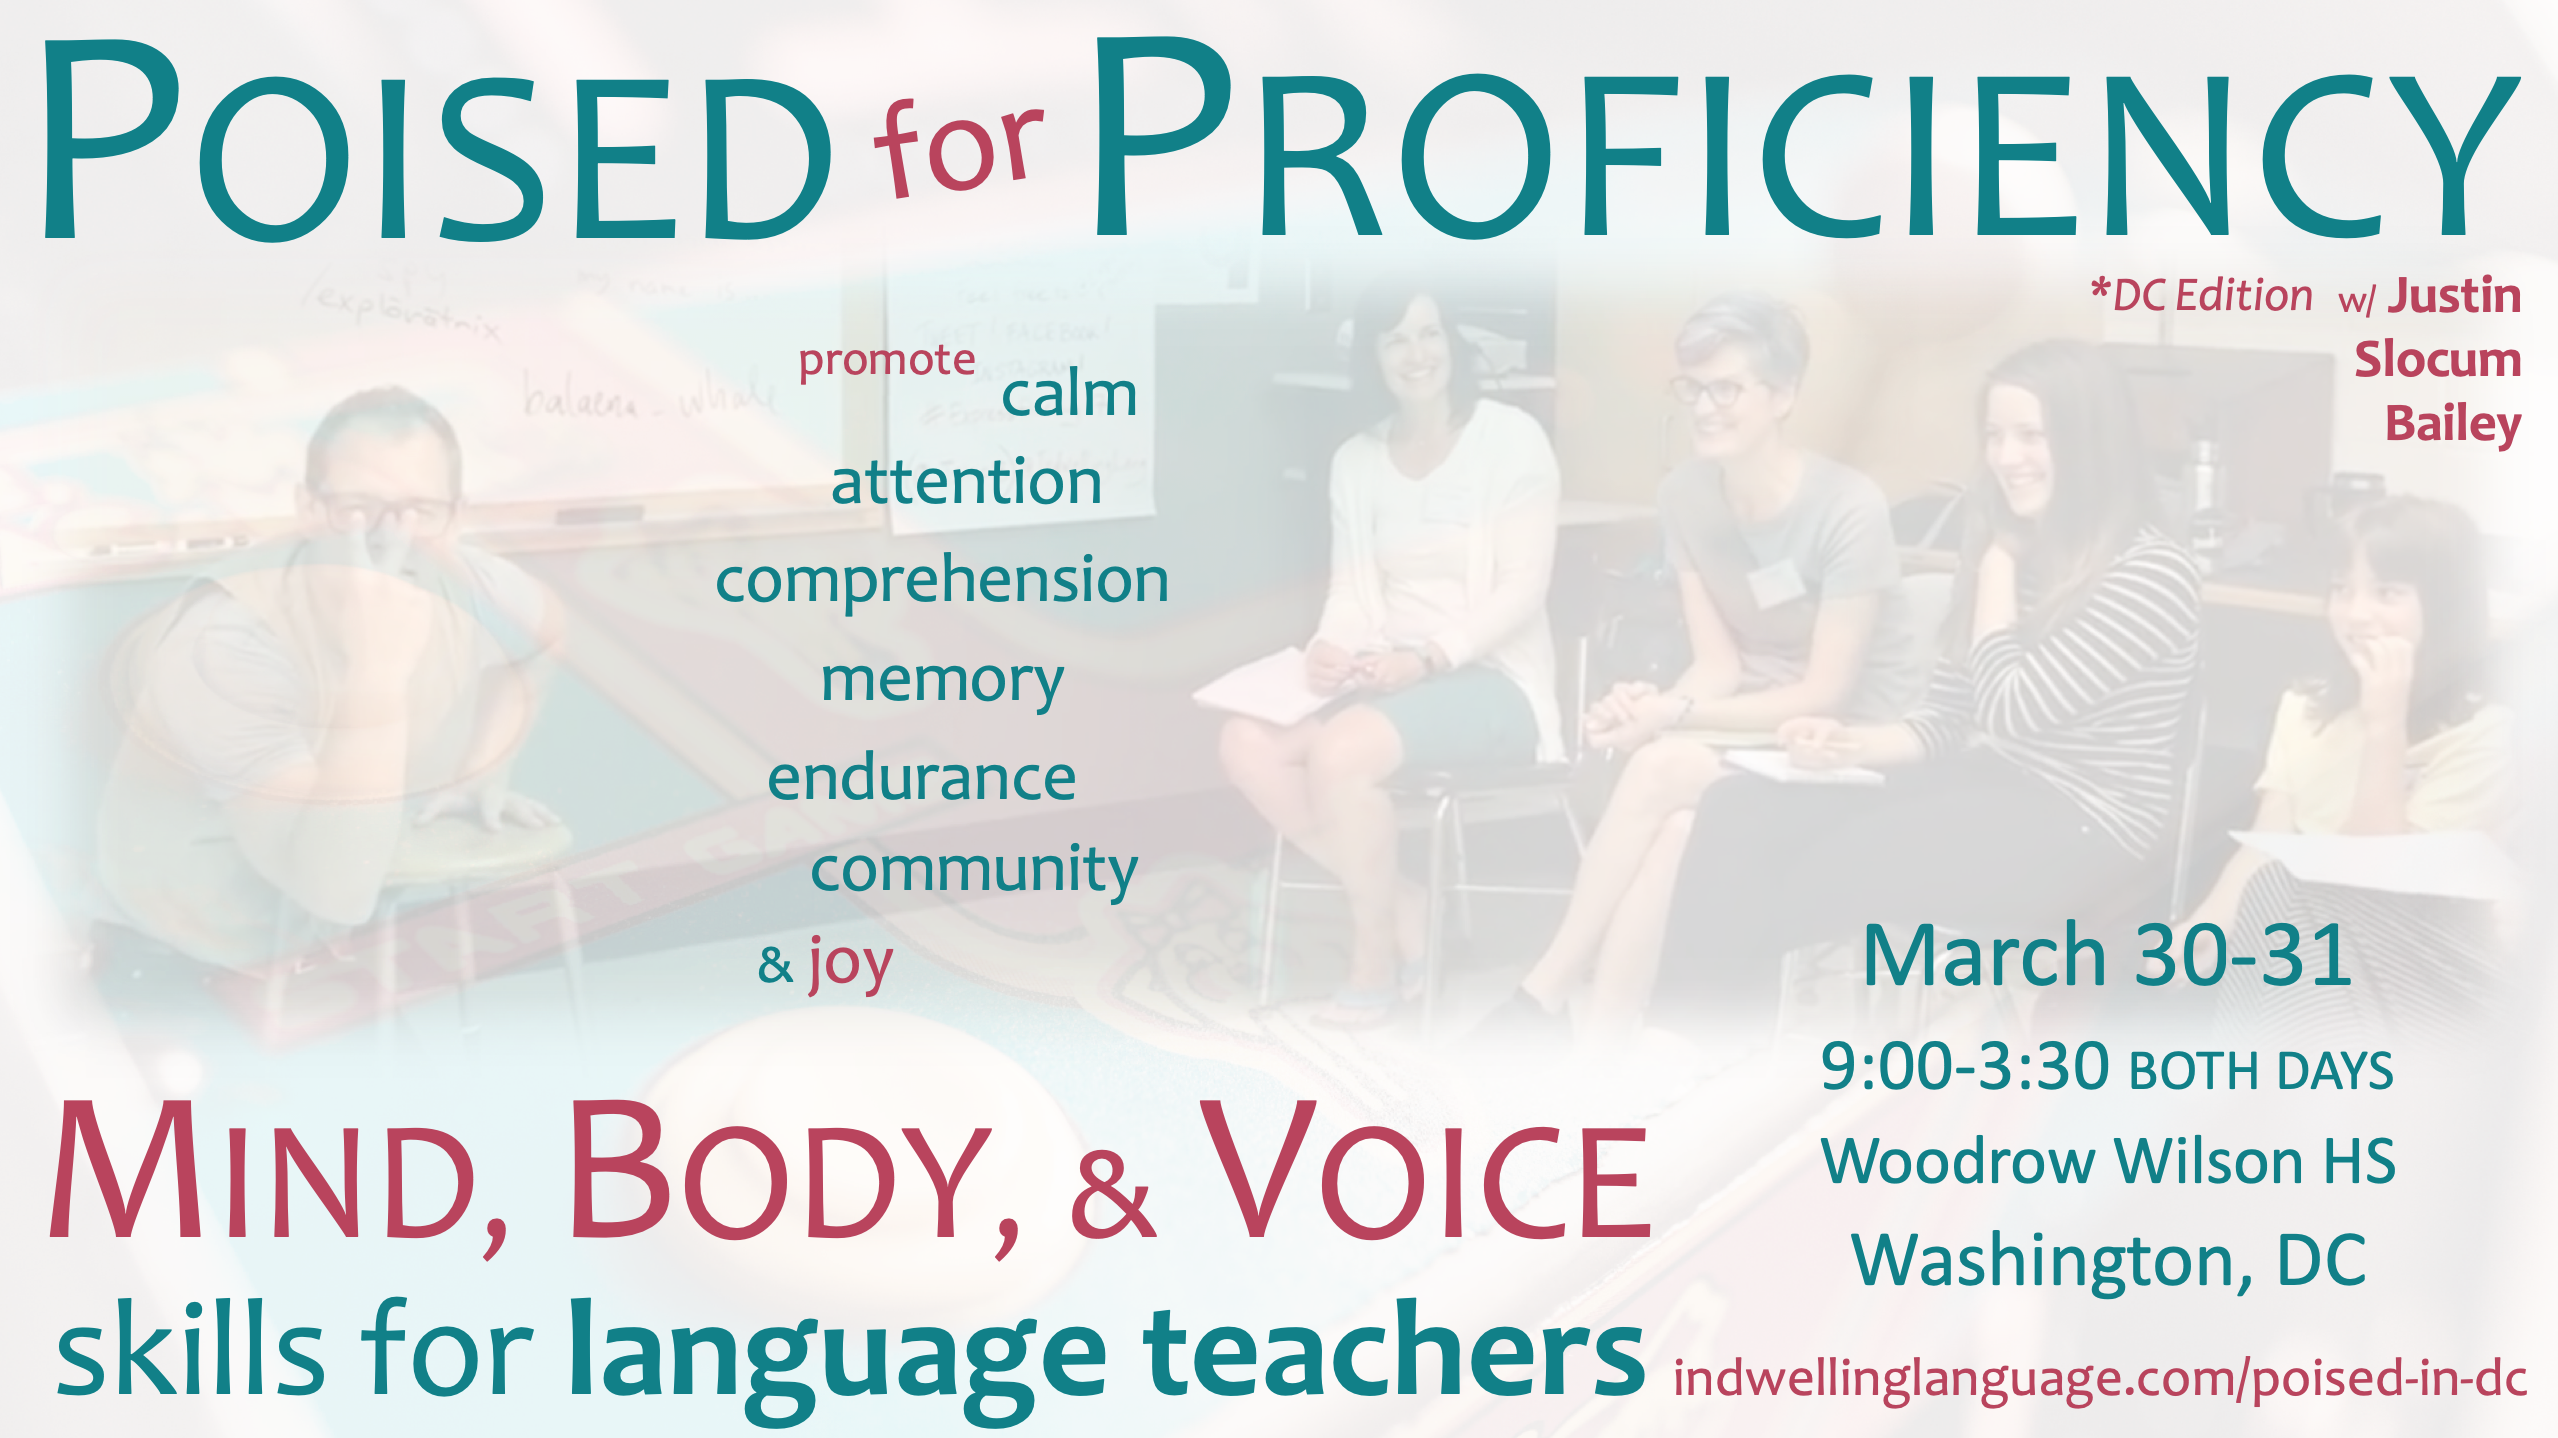 Poised for Proficiency: Mind, Body, & Voice Skills for Language Teachers workshop in Washington, DC